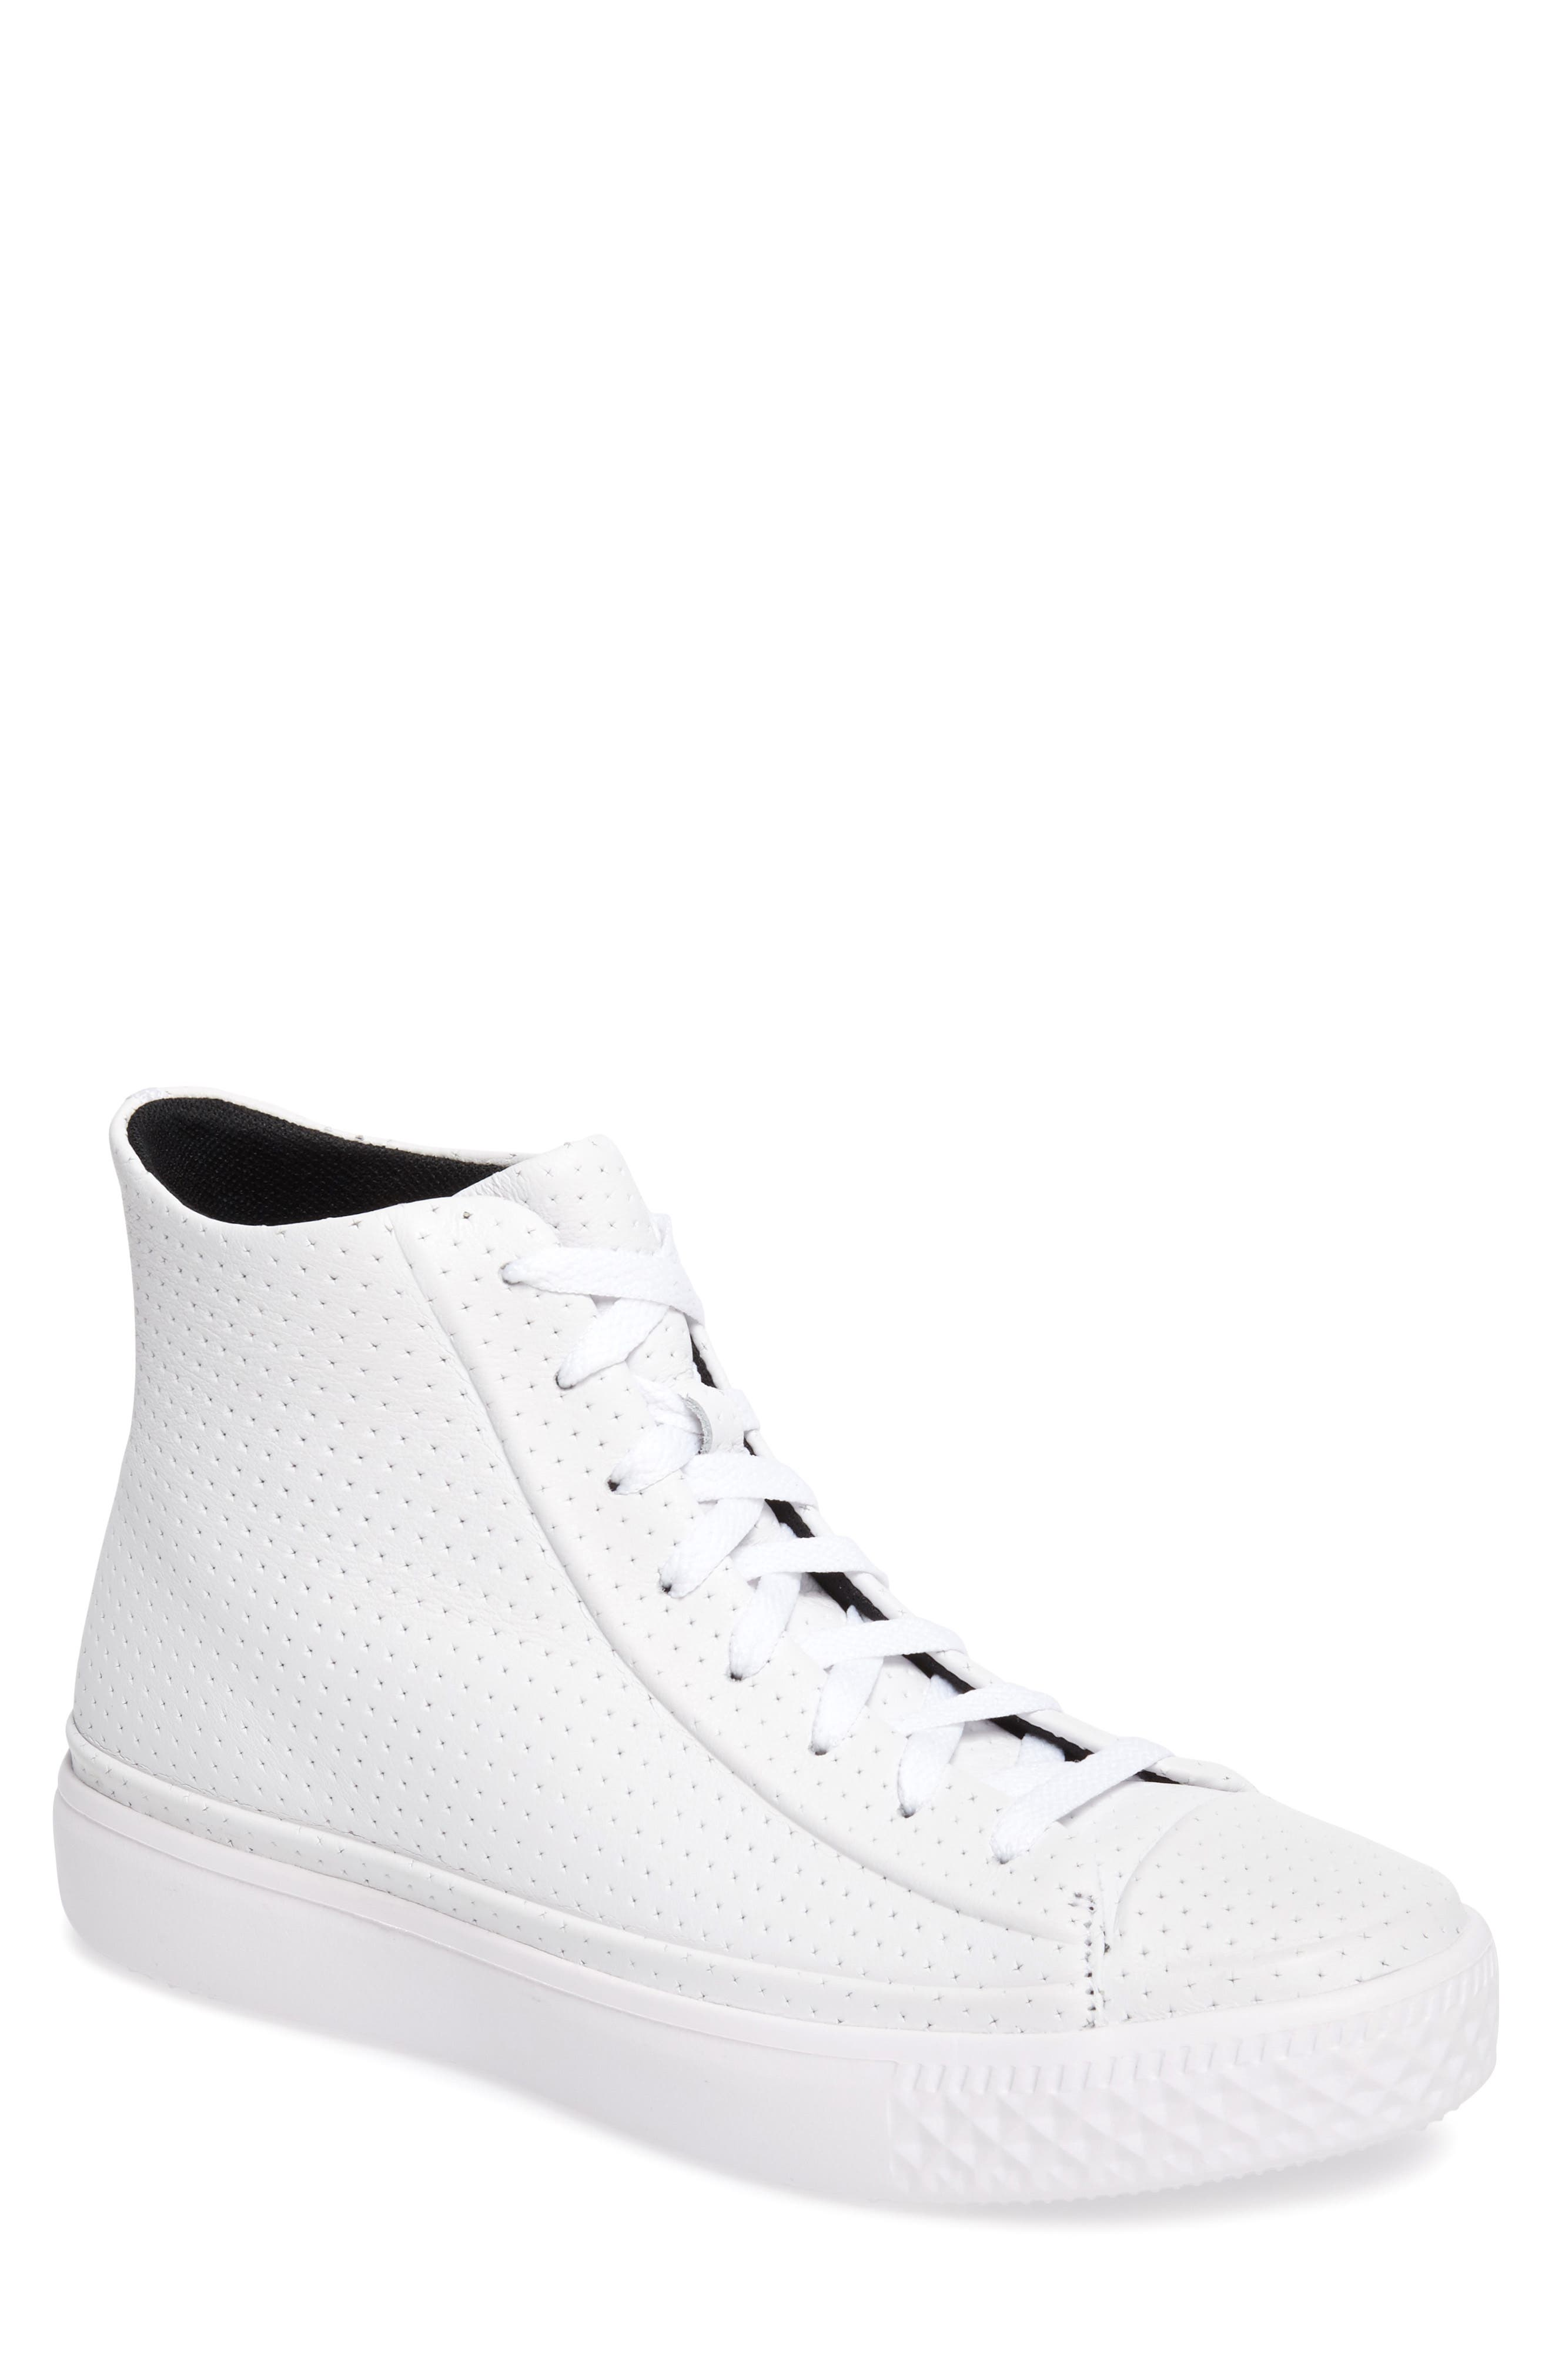 Chuck Taylor<sup>®</sup> All-Star<sup>®</sup> Leather Sneaker,                         Main,                         color, 100